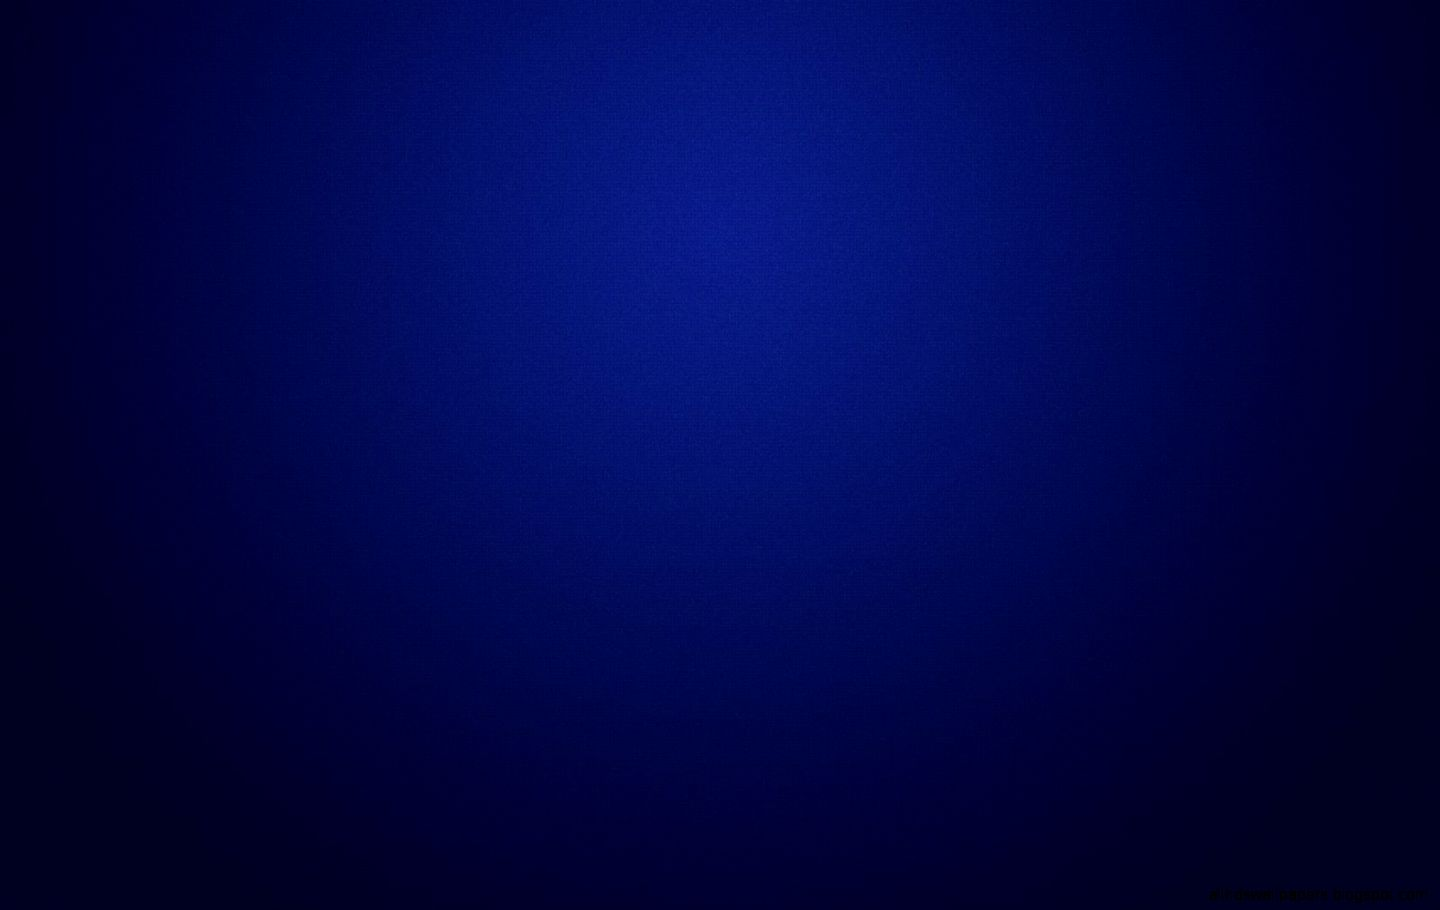 Navy Blue Background   PowerPoint Backgrounds for 1440x910